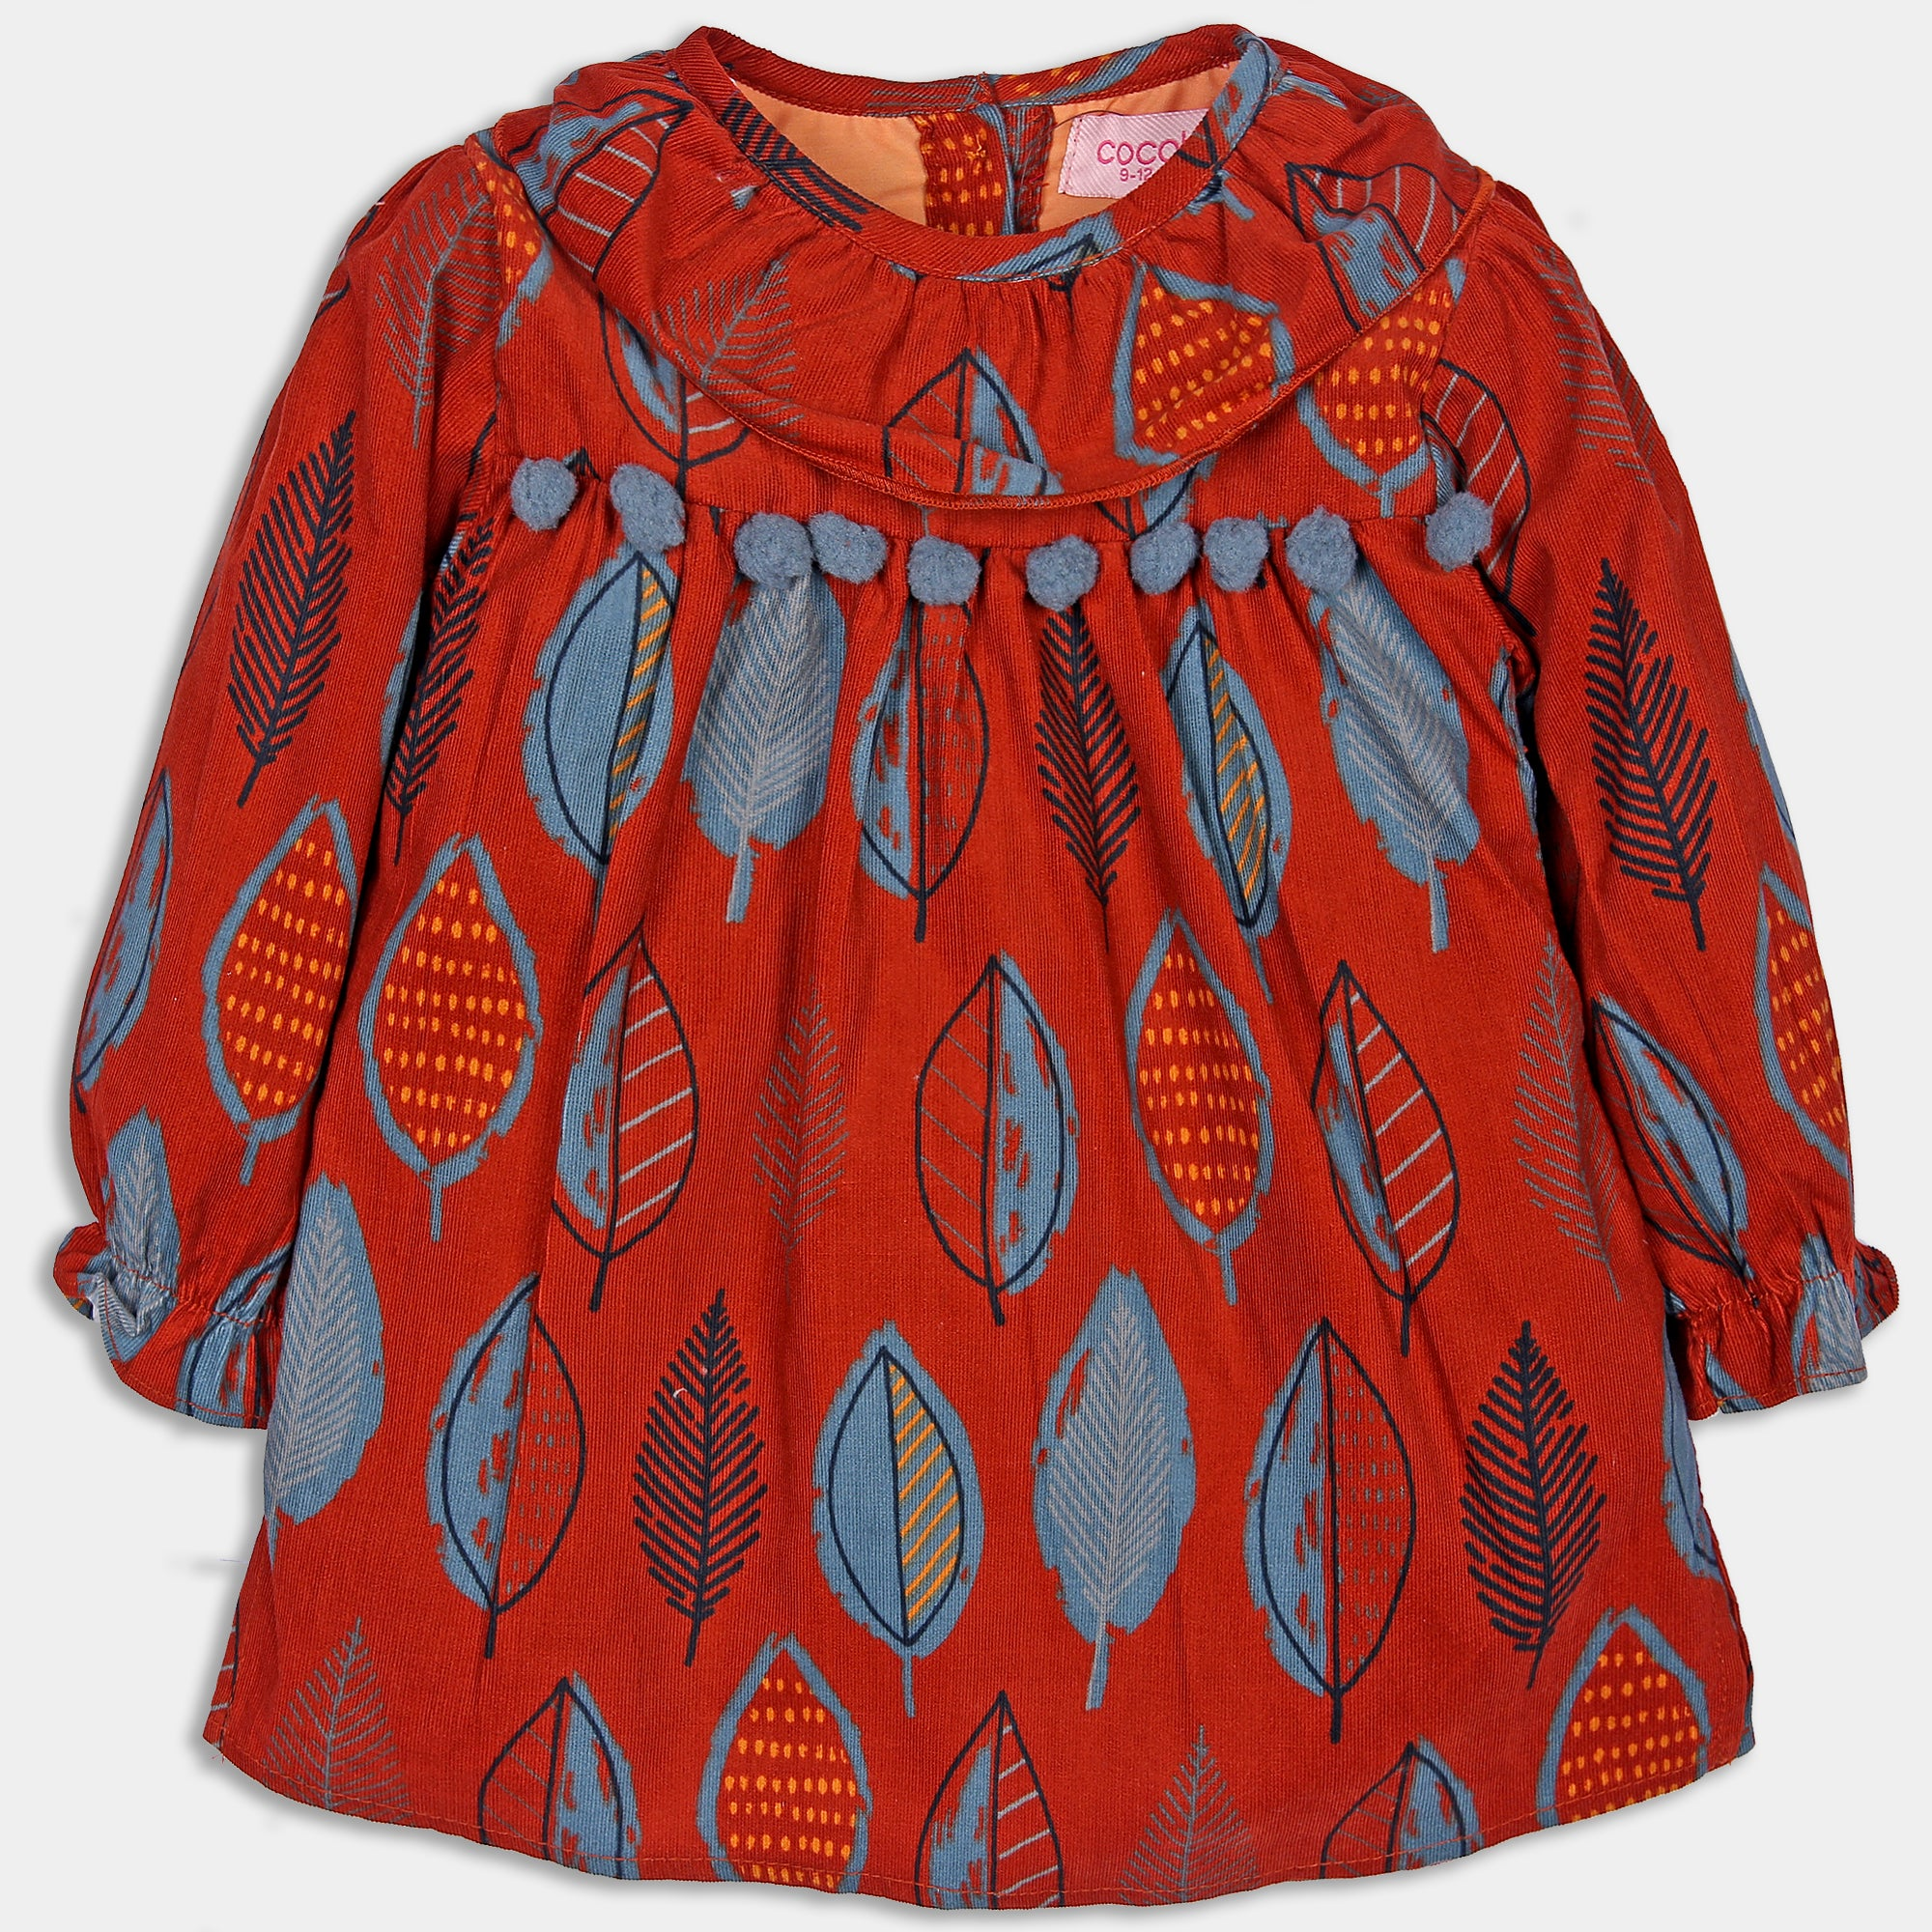 Leaf Printed Red Top